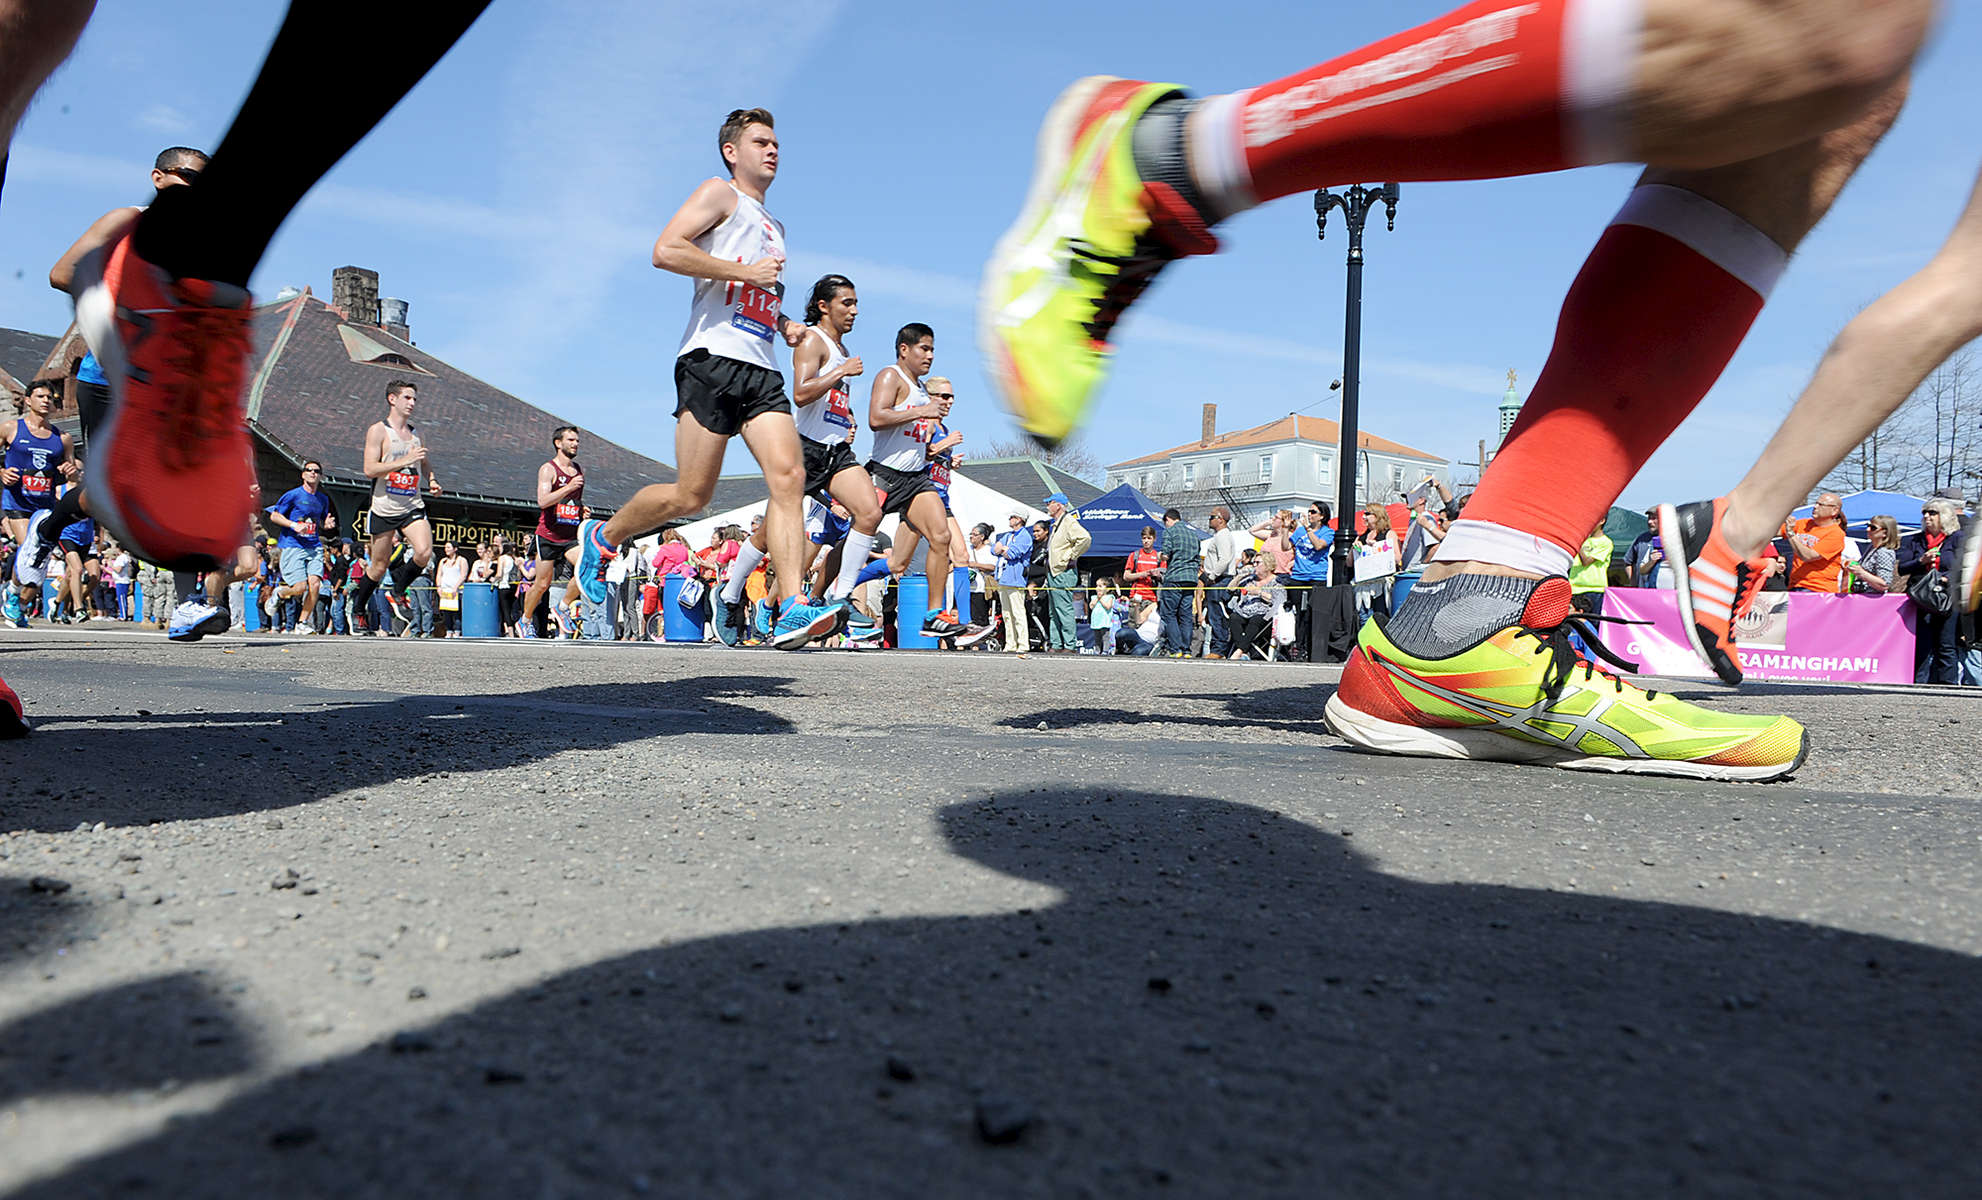 4/18/16-- FRAMINGHAM-- Marathoners in downtown Framingham Monday.Daily News and Wicked Local Staff Photo/Art Illman